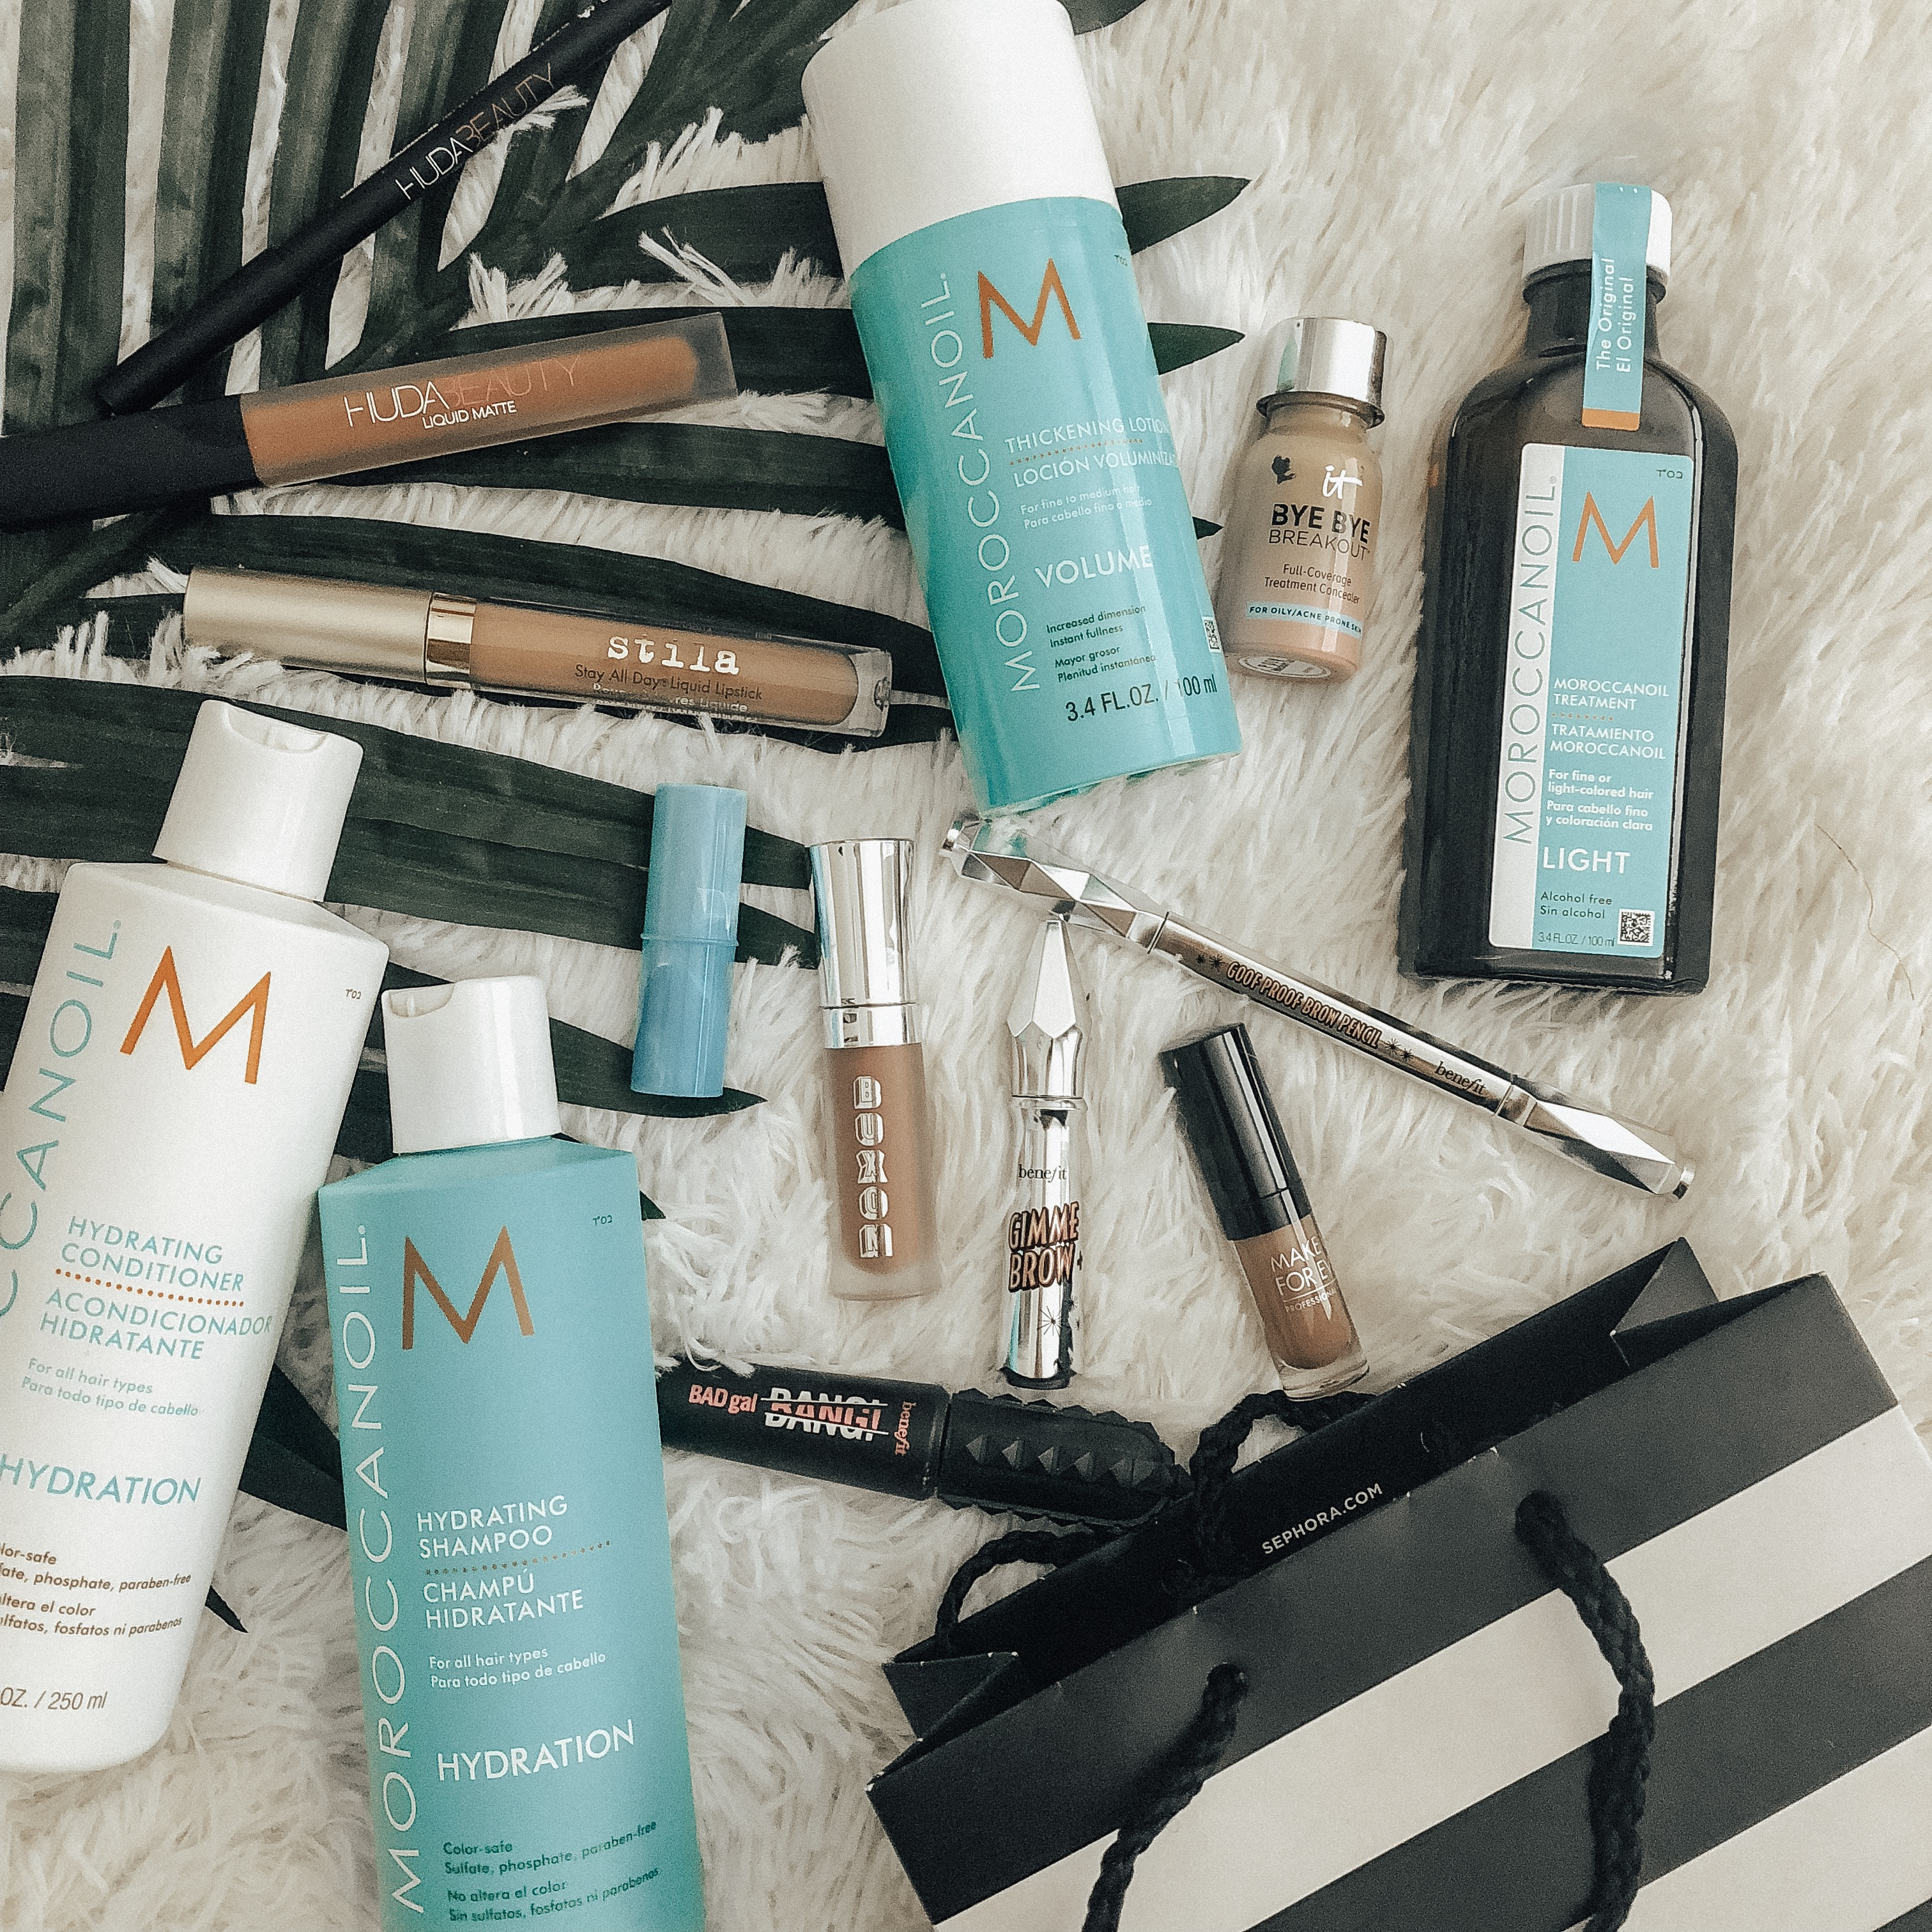 SEPHORA BEAUTY INSIDER SALE- MY MUST HAVES AND WHAT I GOT- Jaclyn De Leon Style + beauty blogger + beauty must haves + fall beauty + moroccan oil + buxom lipgloss + benefit gimme brow + it cosmetics concealer + huda beauty +benefit bad gal bang + stila longwear lipgloss + tarte + makeup forever